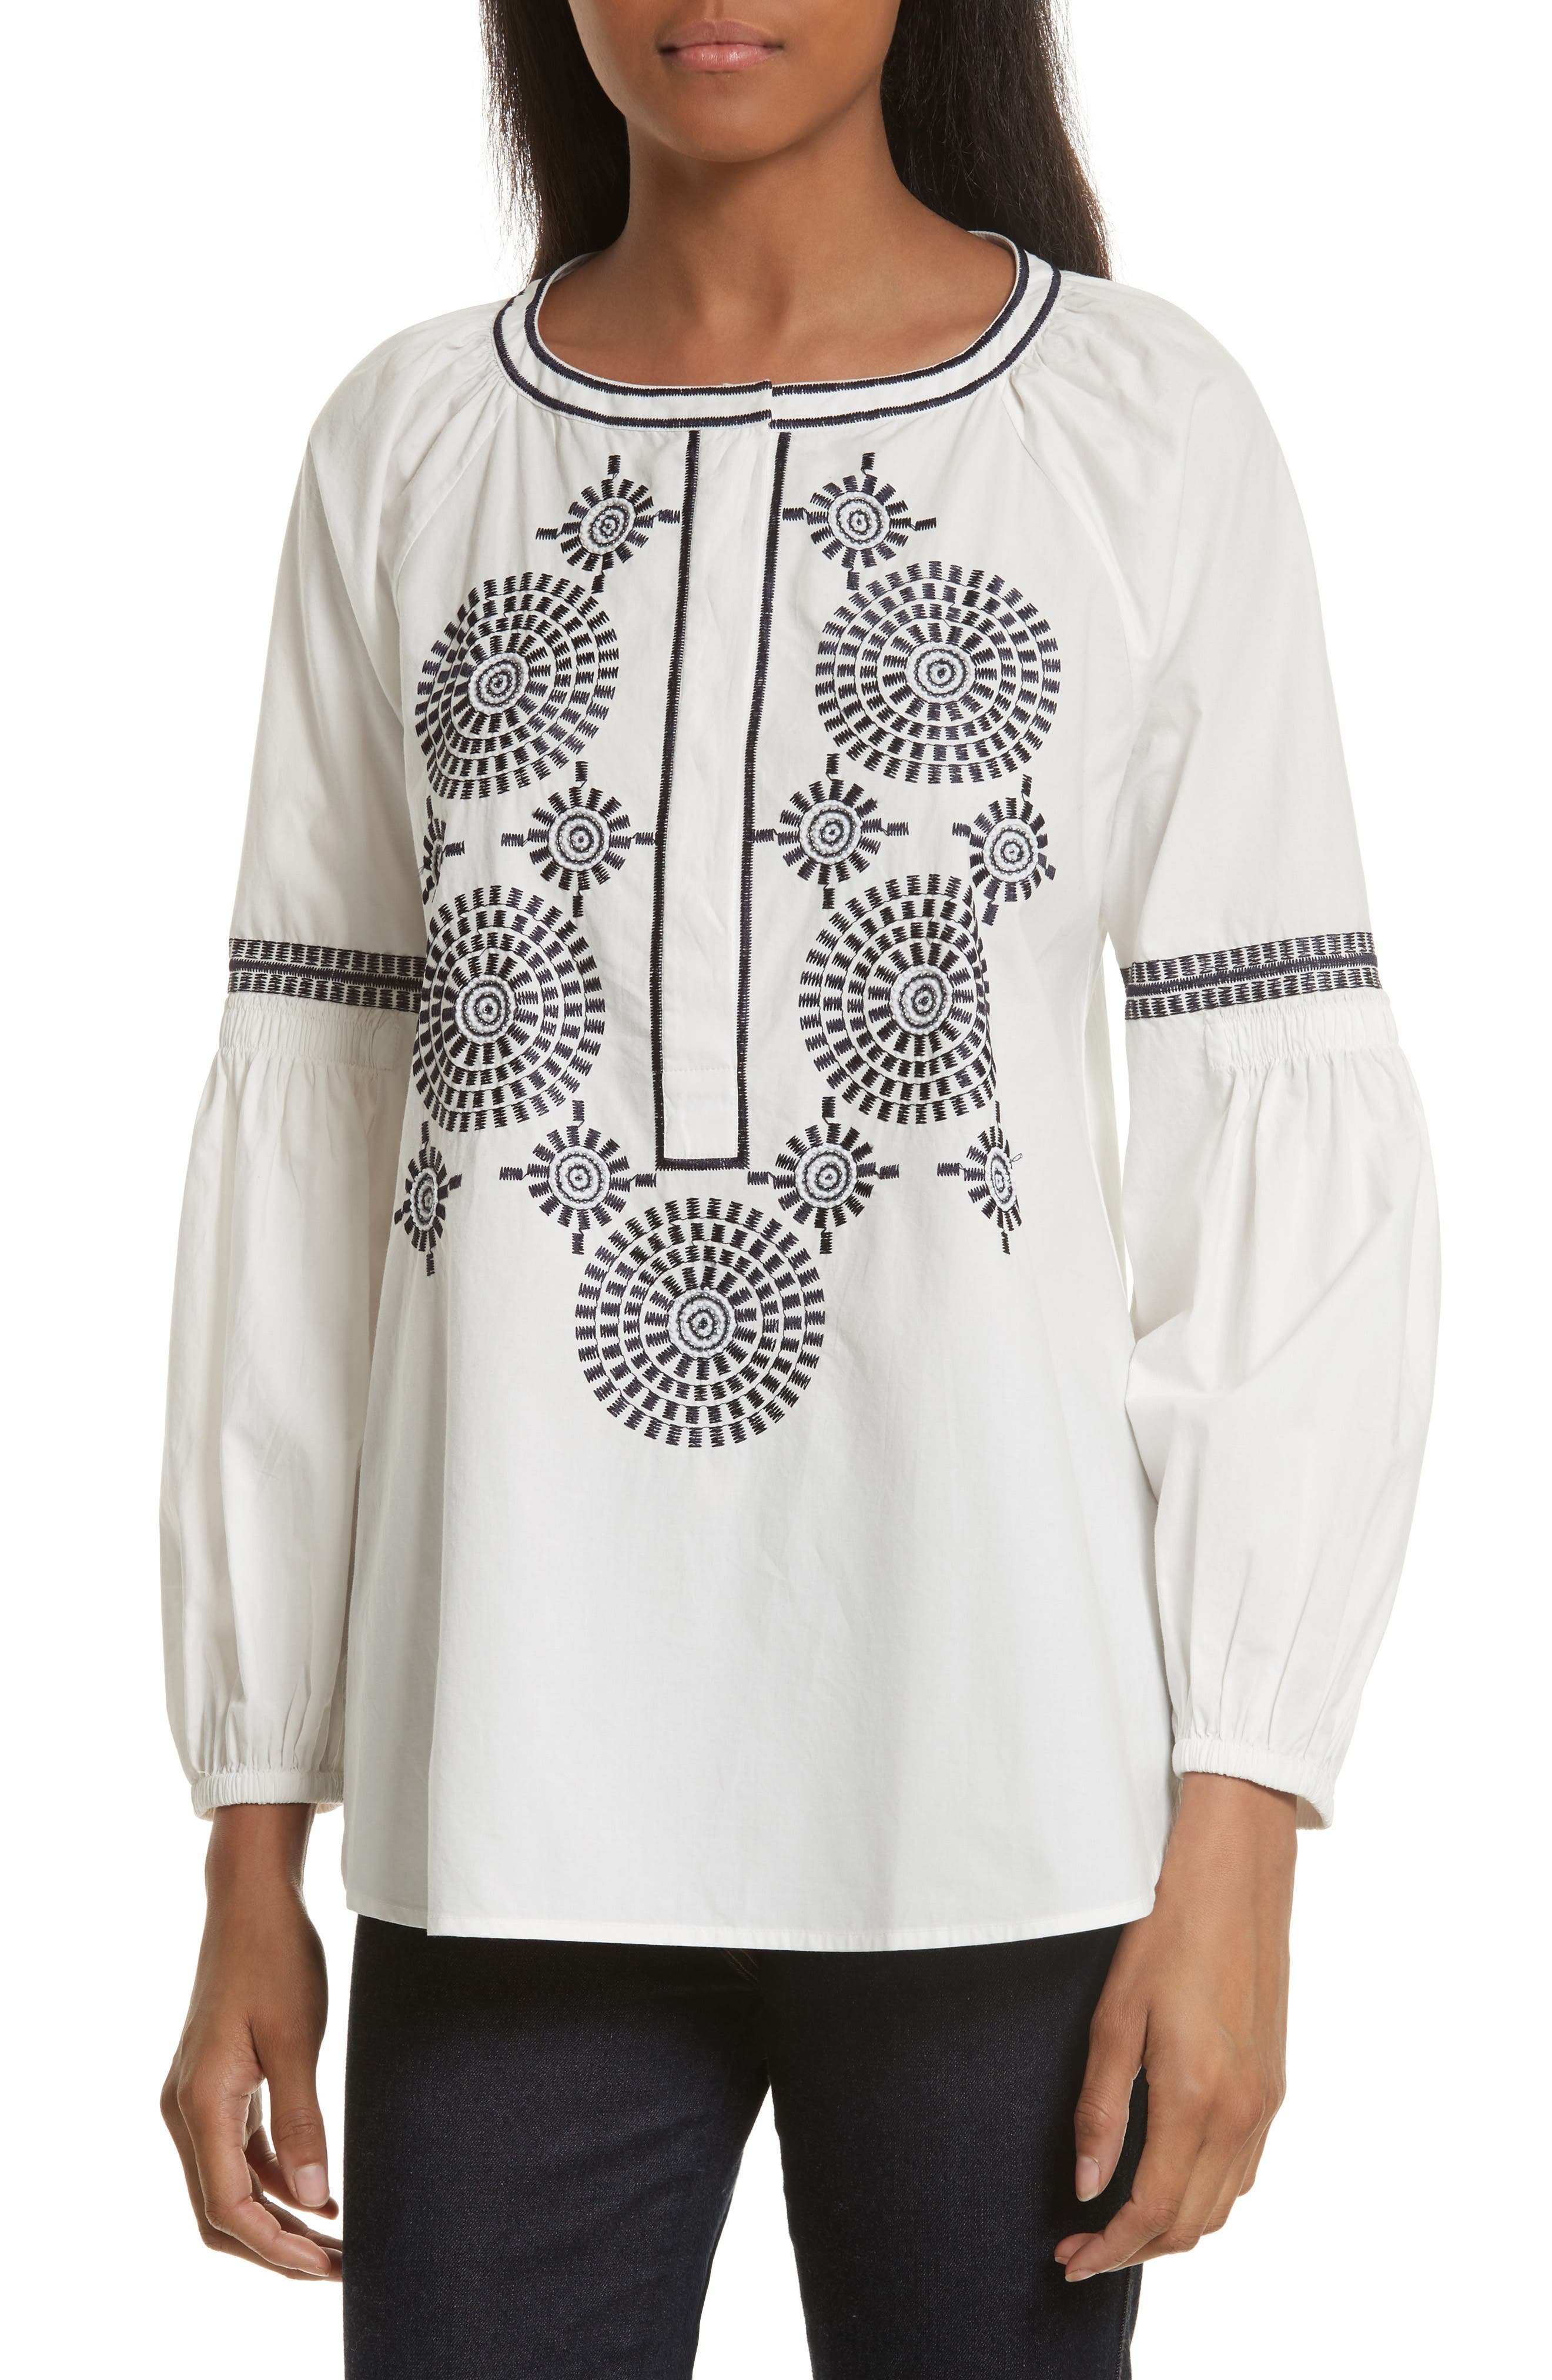 Main Image - Tory Burch Aubrey Embroidered Peasant Top